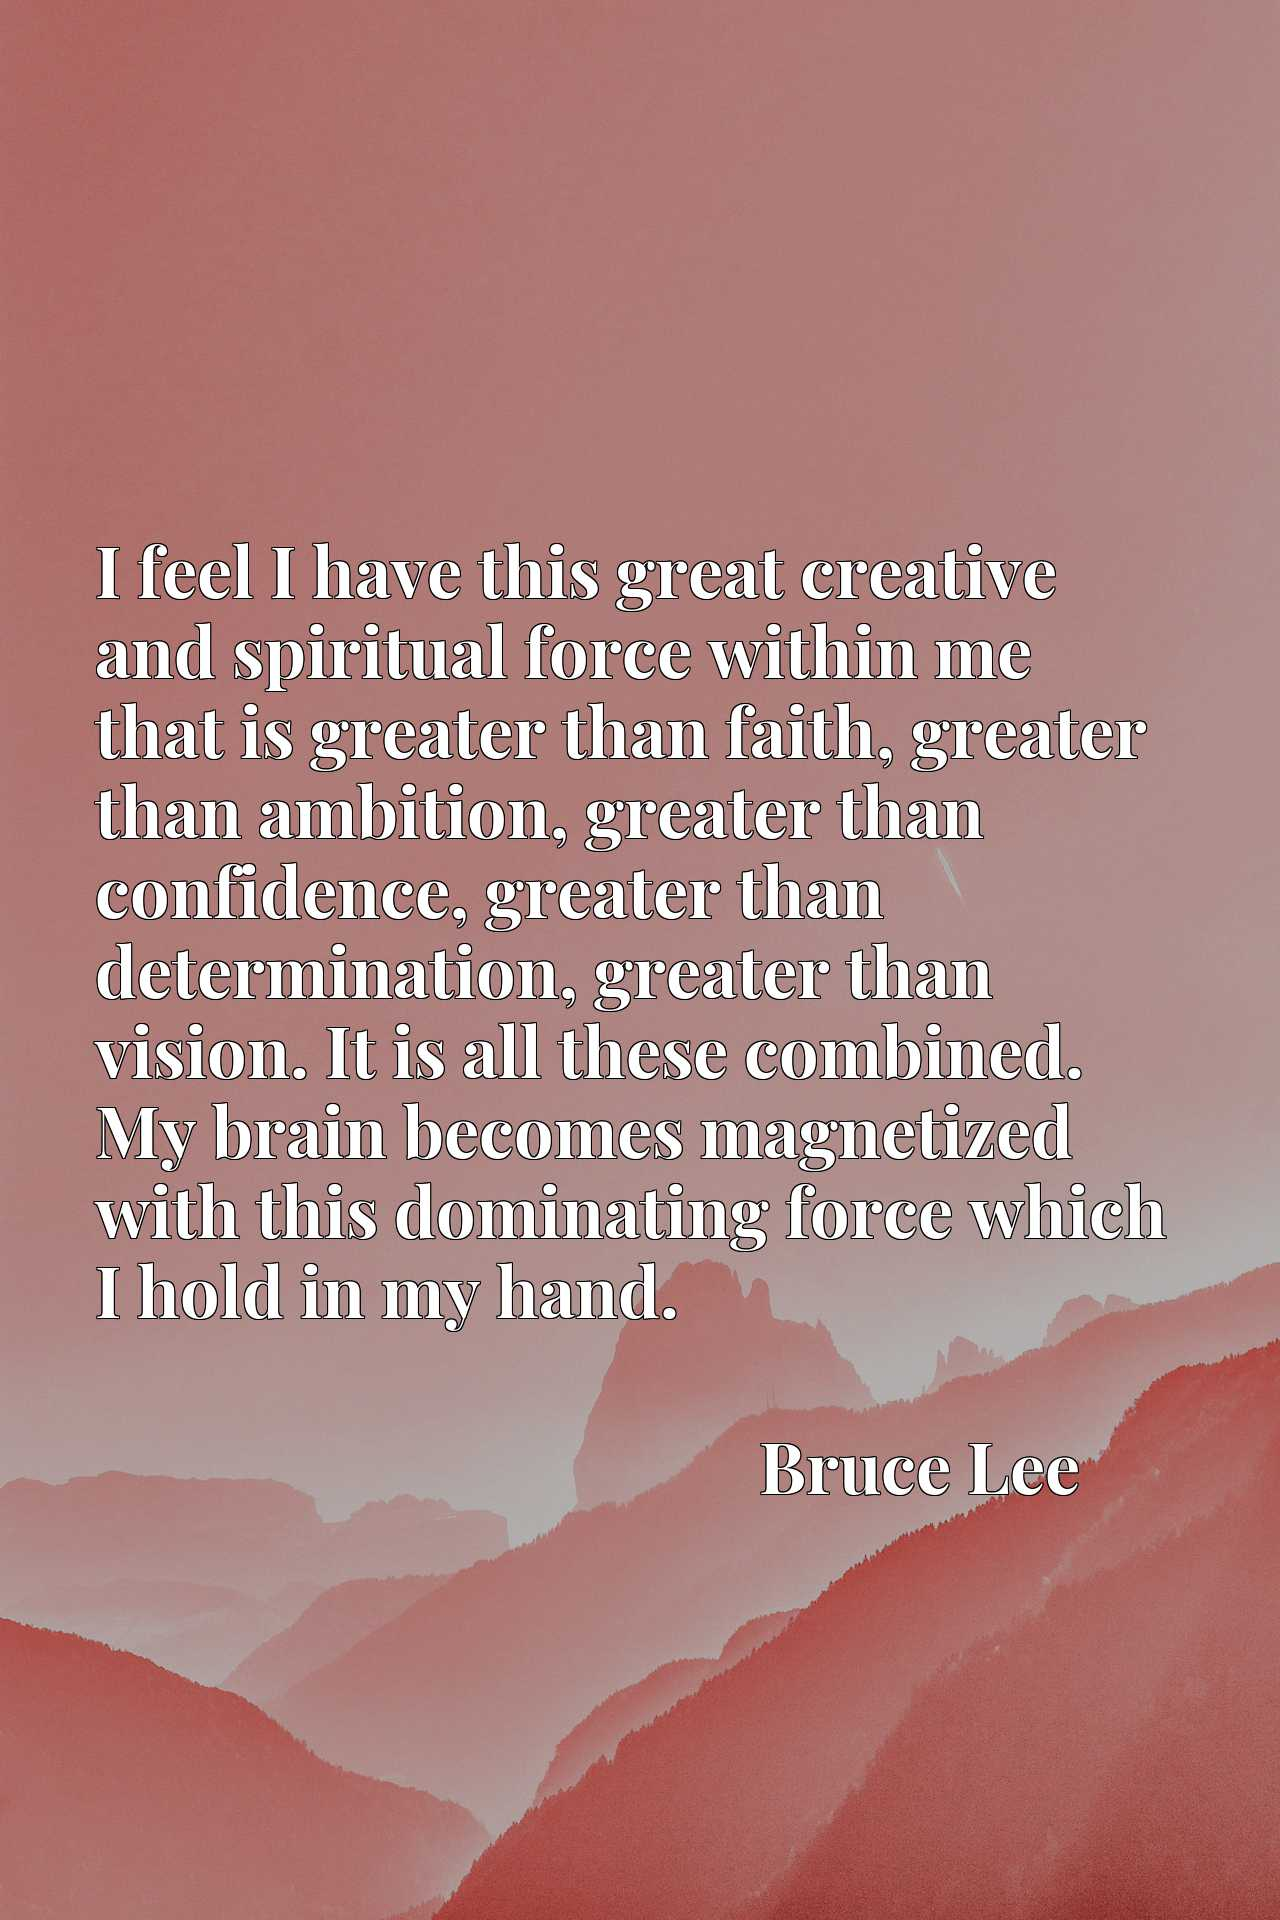 I feel I have this great creative and spiritual force within me that is greater than faith, greater than ambition, greater than confidence, greater than determination, greater than vision. It is all these combined. My brain becomes magnetized with this dominating force which I hold in my hand.